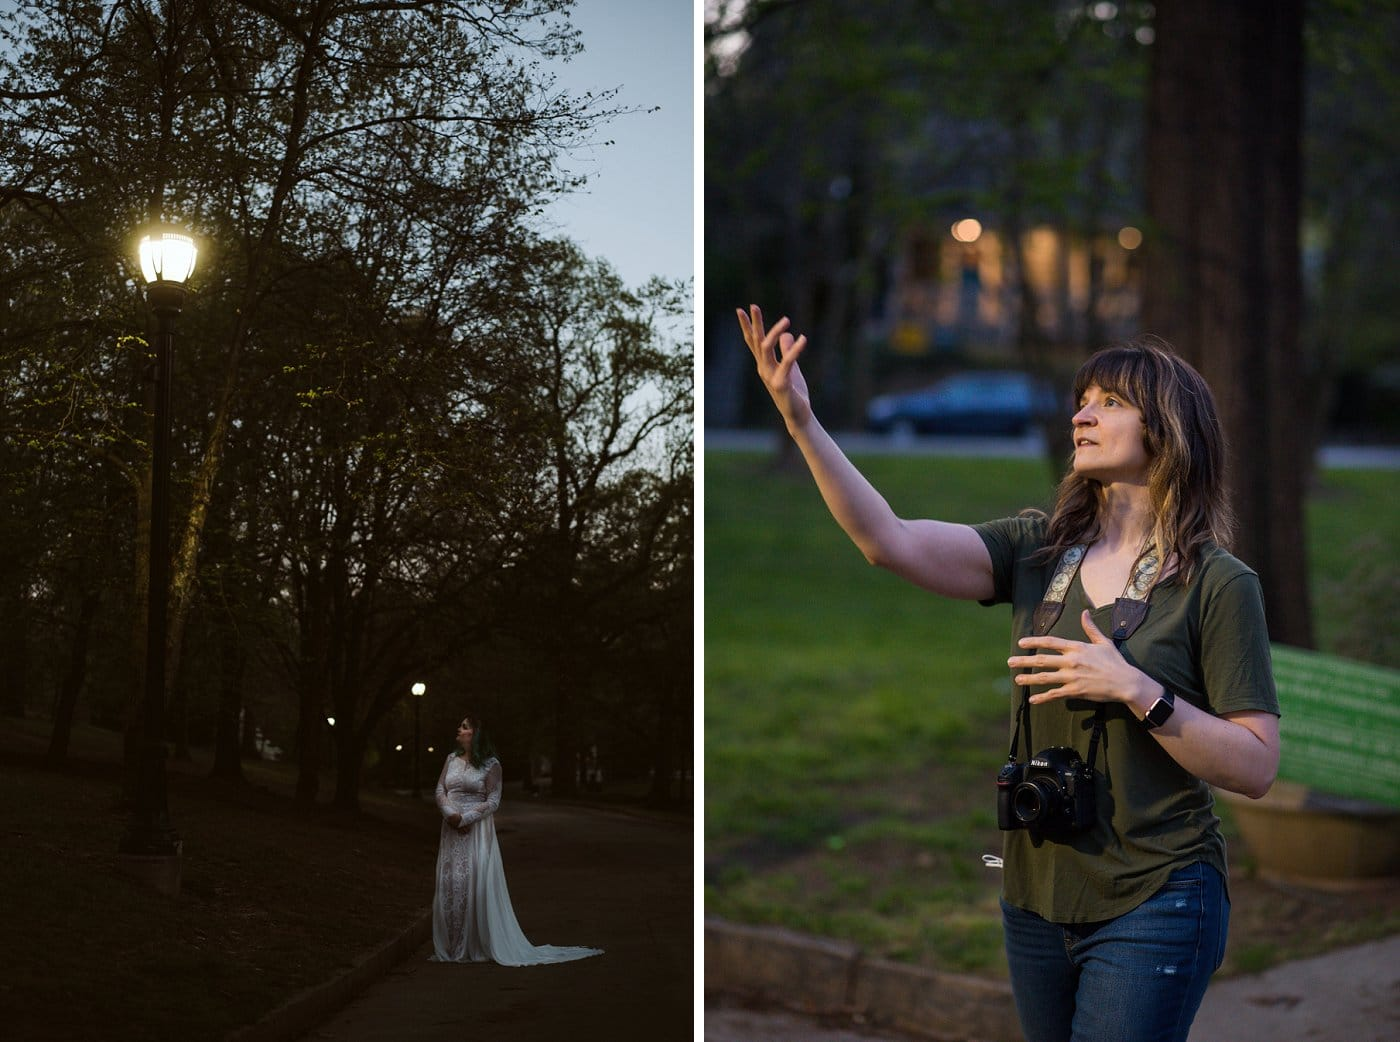 nighttime portraits of bride in wedding gown by lights at Grant Park